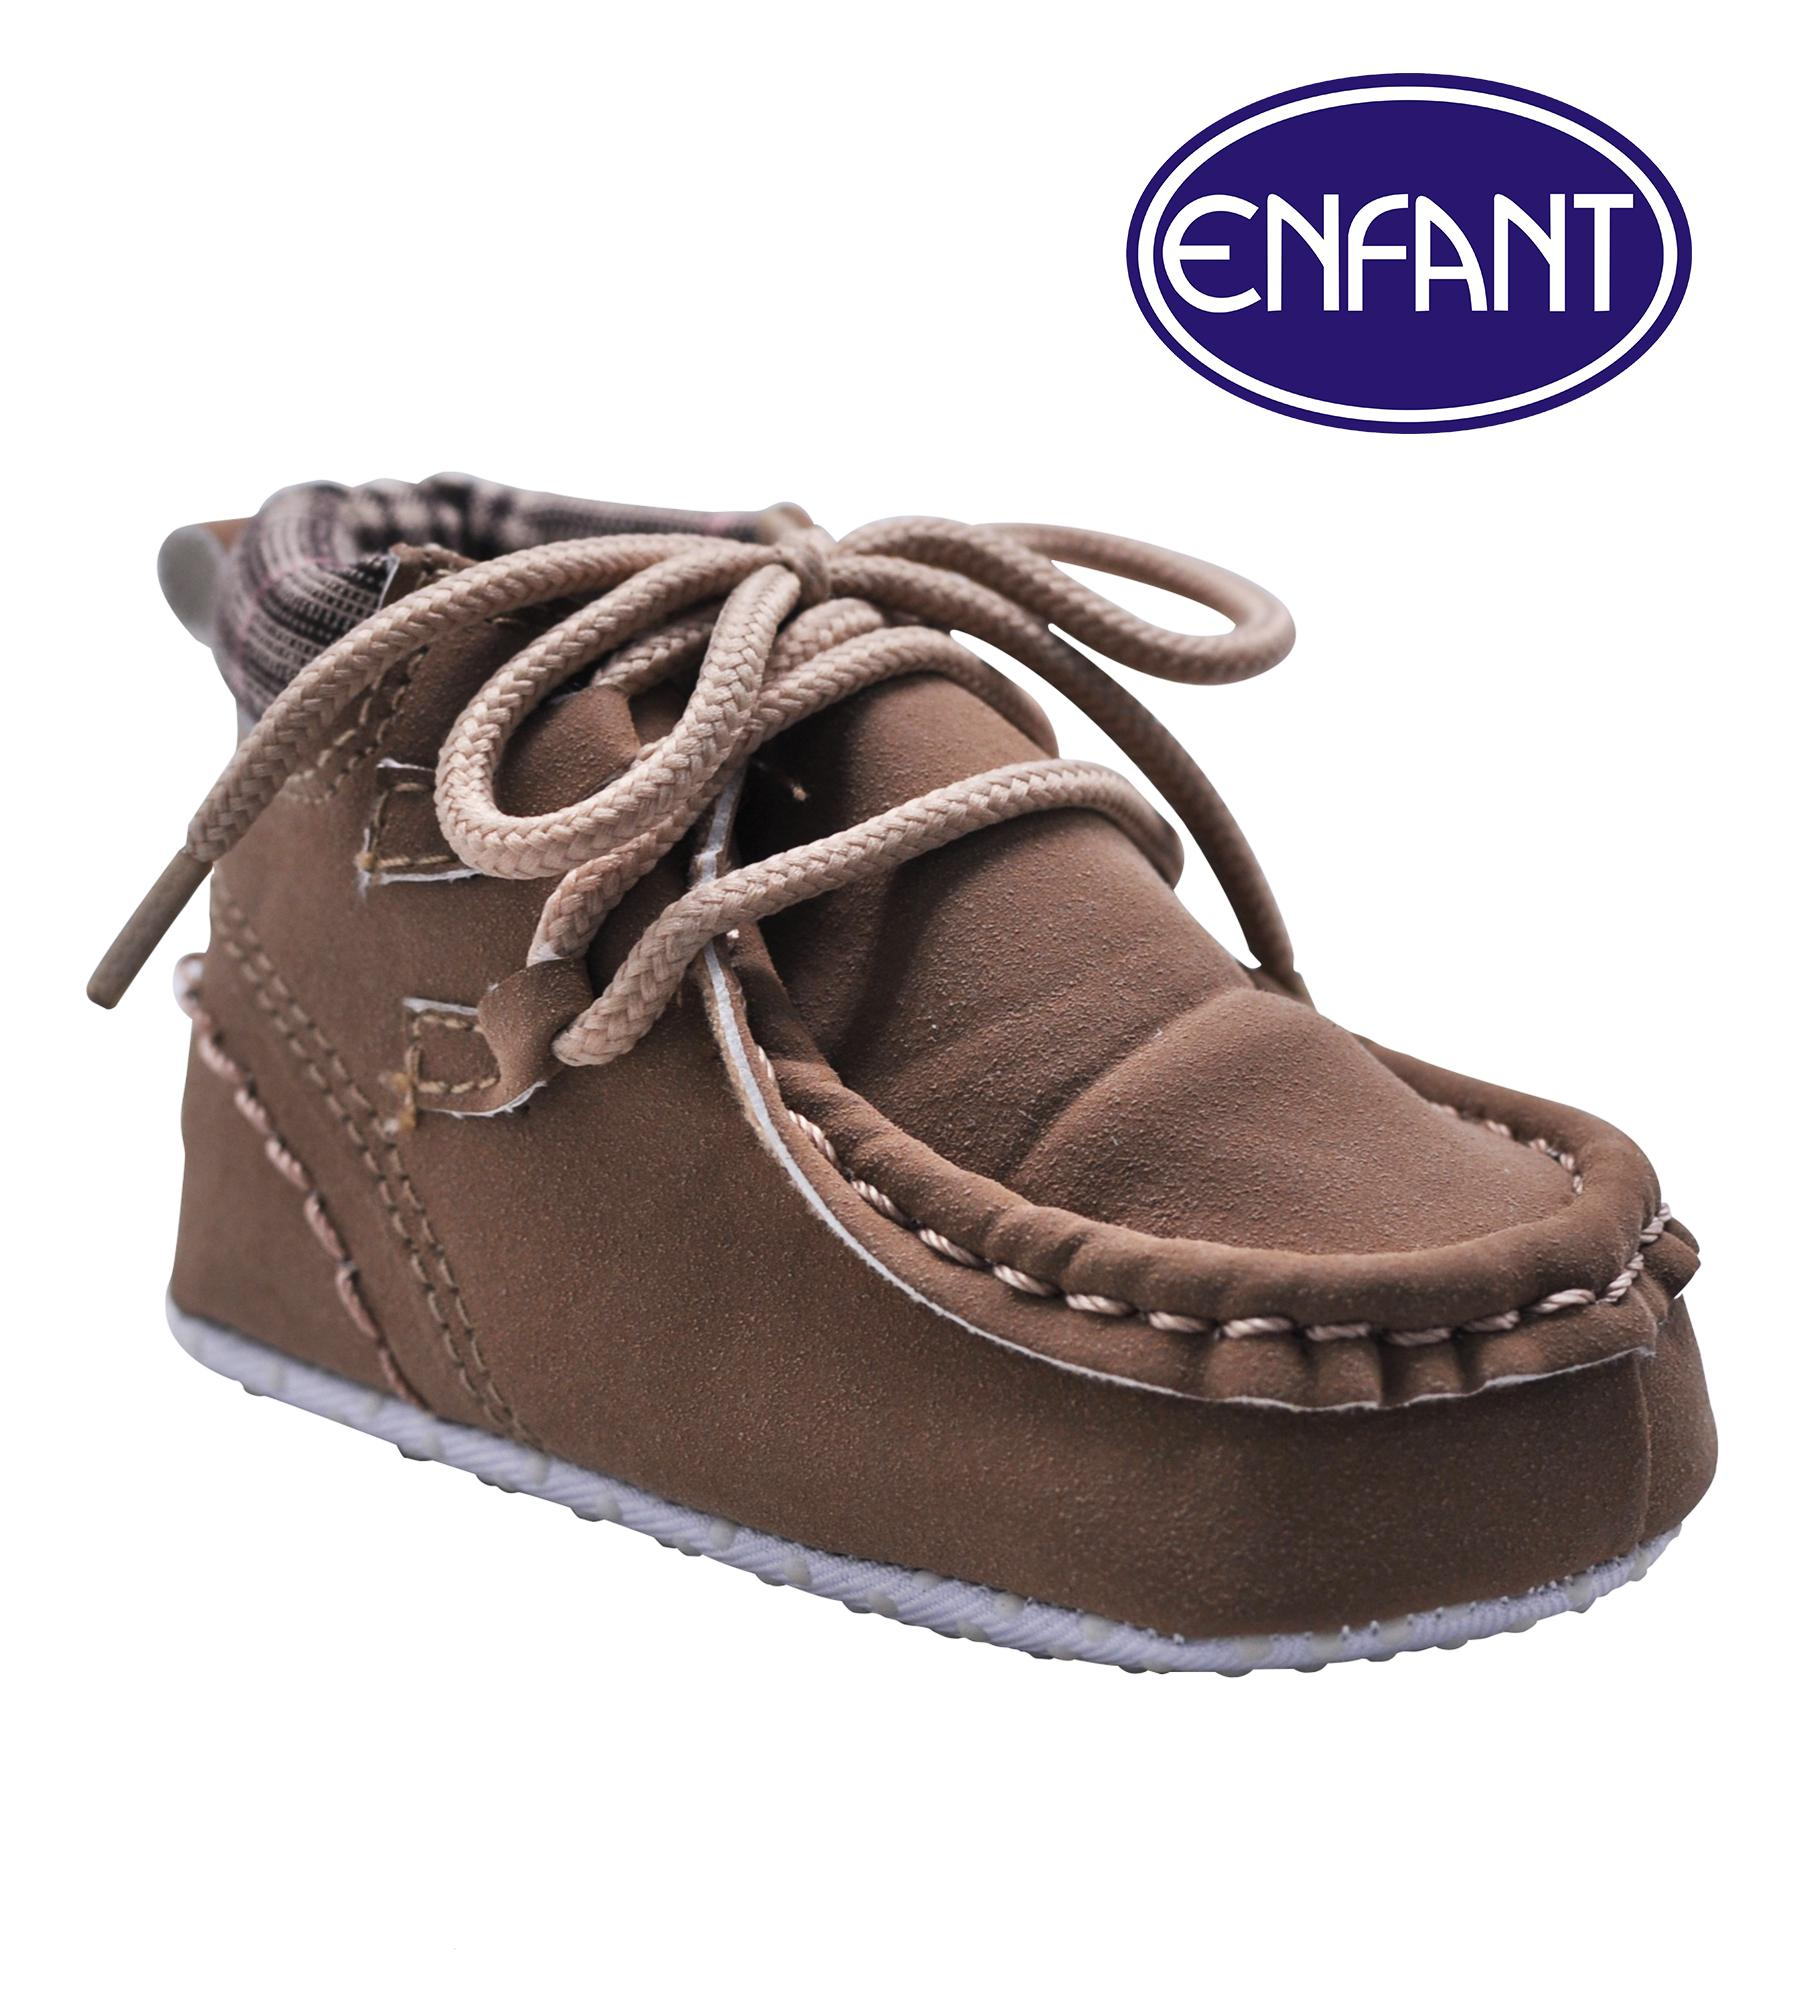 Boys Sneakers for sale Sneakers for Baby Boys online brands